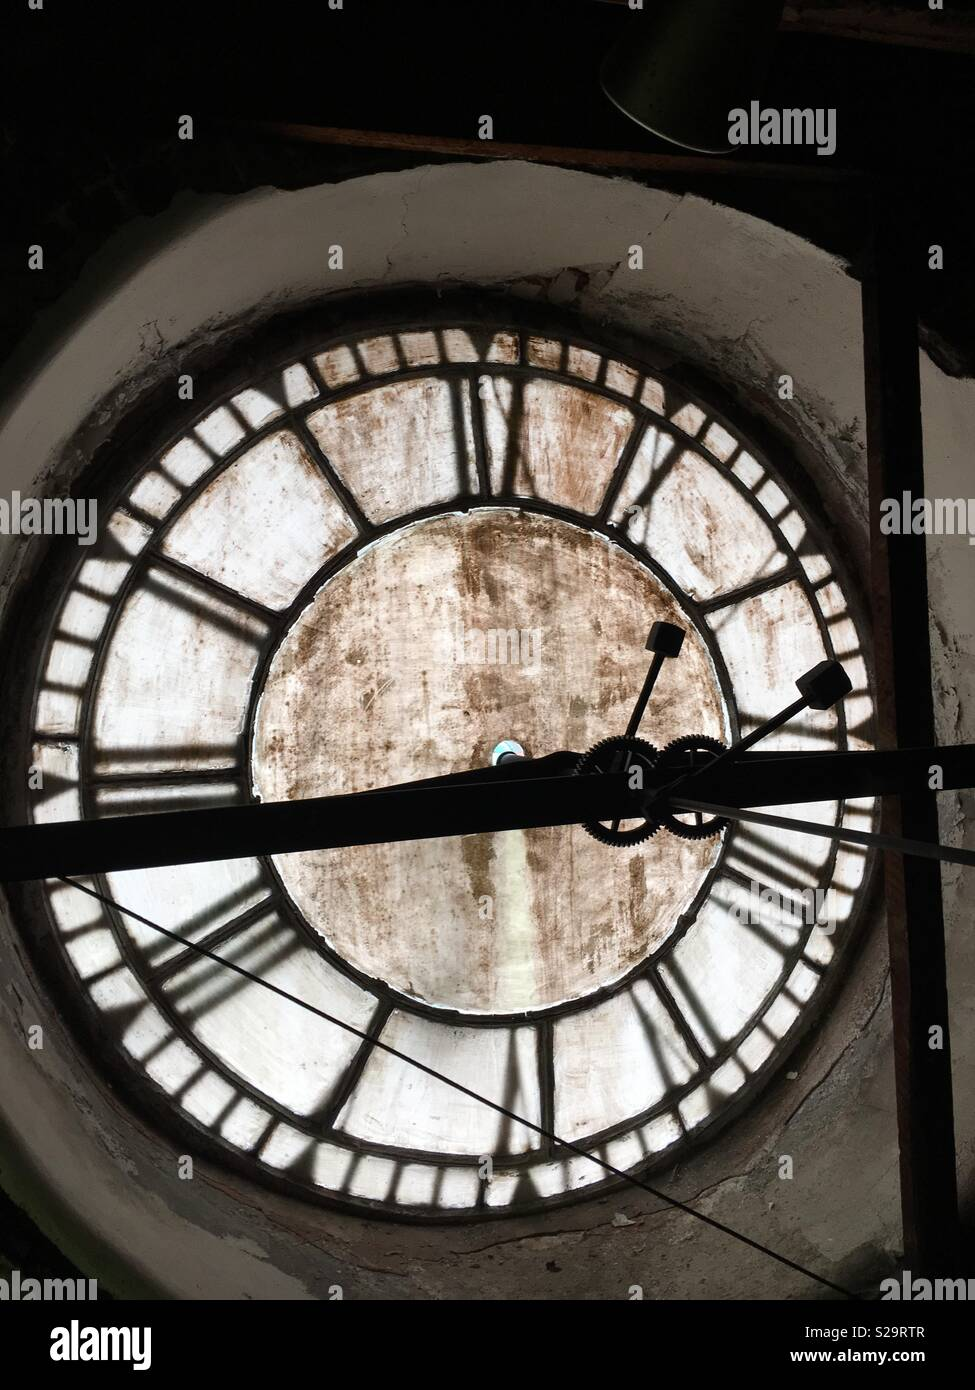 Inside a clock tower - Stock Image